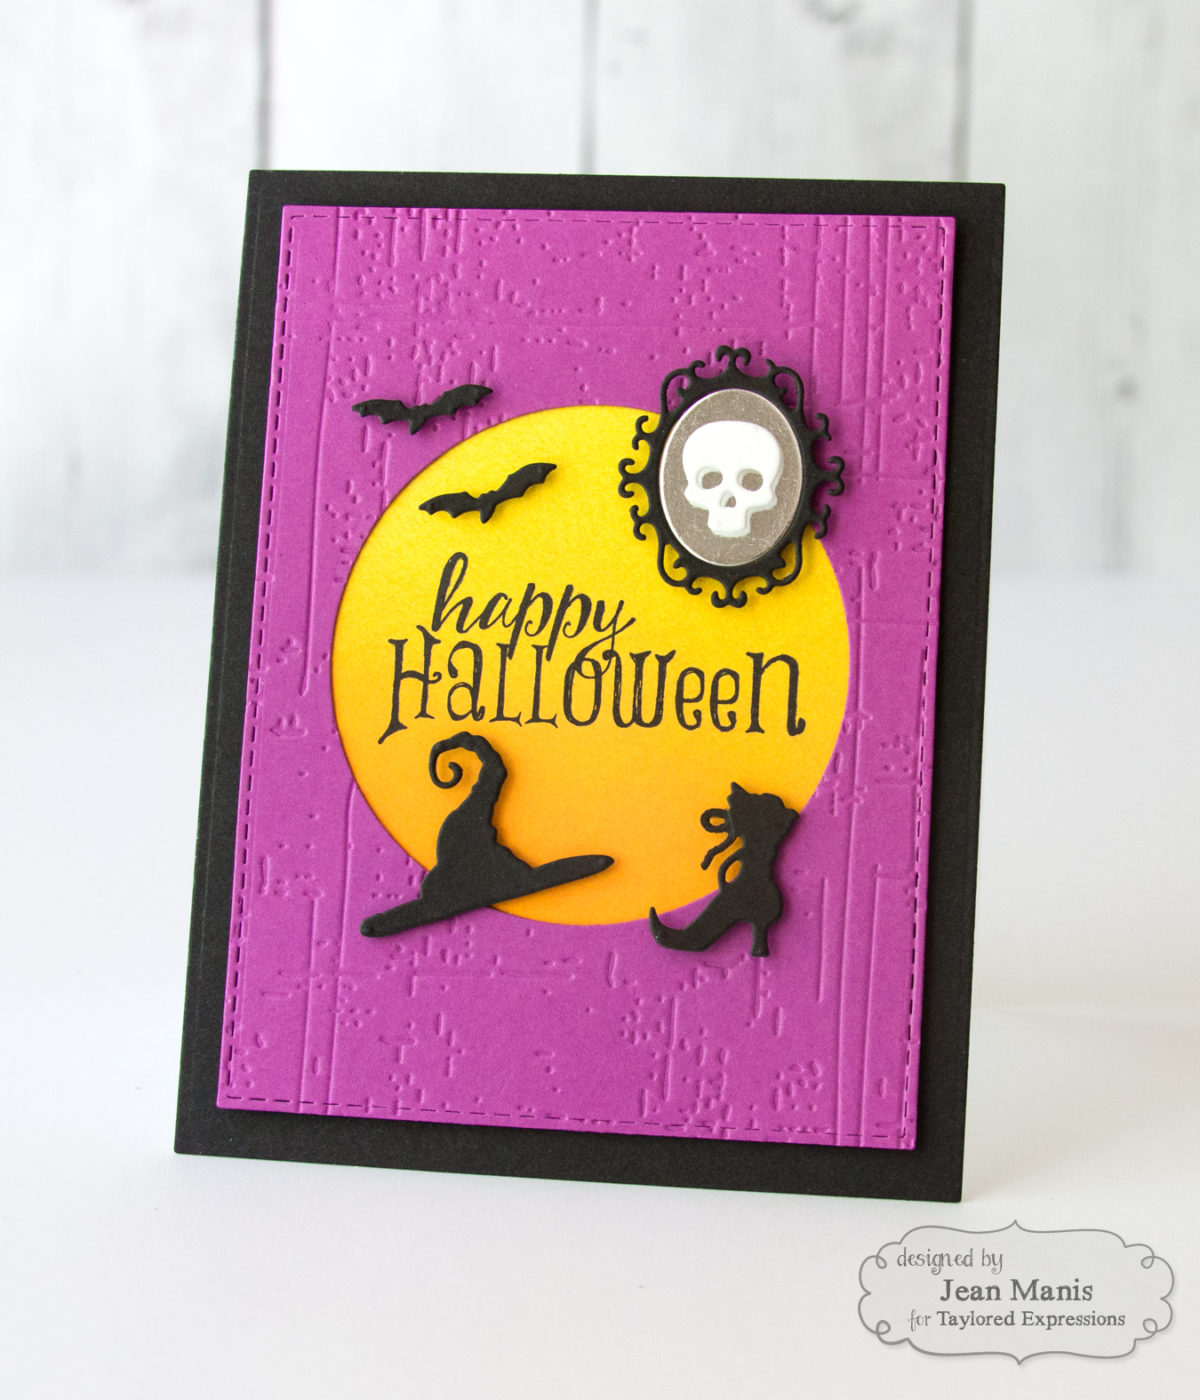 Taylored Expressions – Happy Halloween